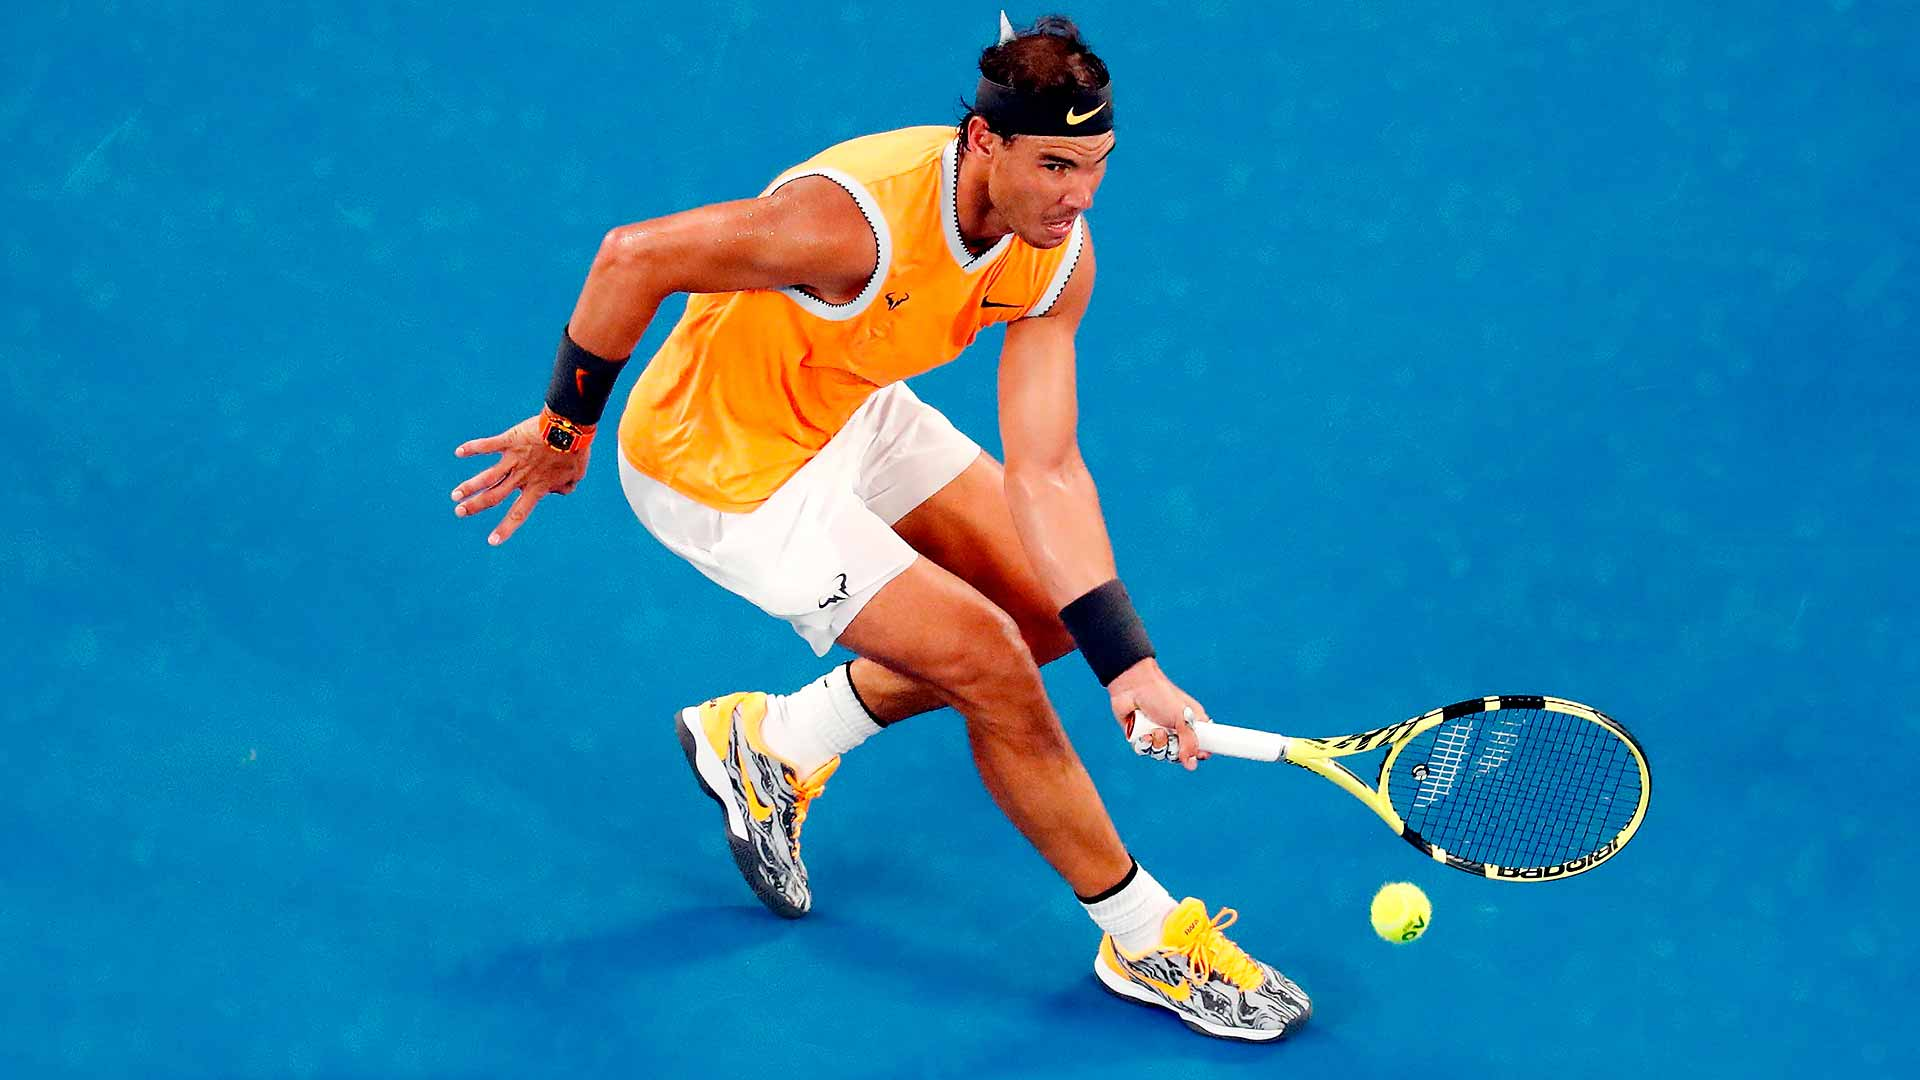 Nadal Ruthless In 250th Major Match Win Atp Tour Tennis